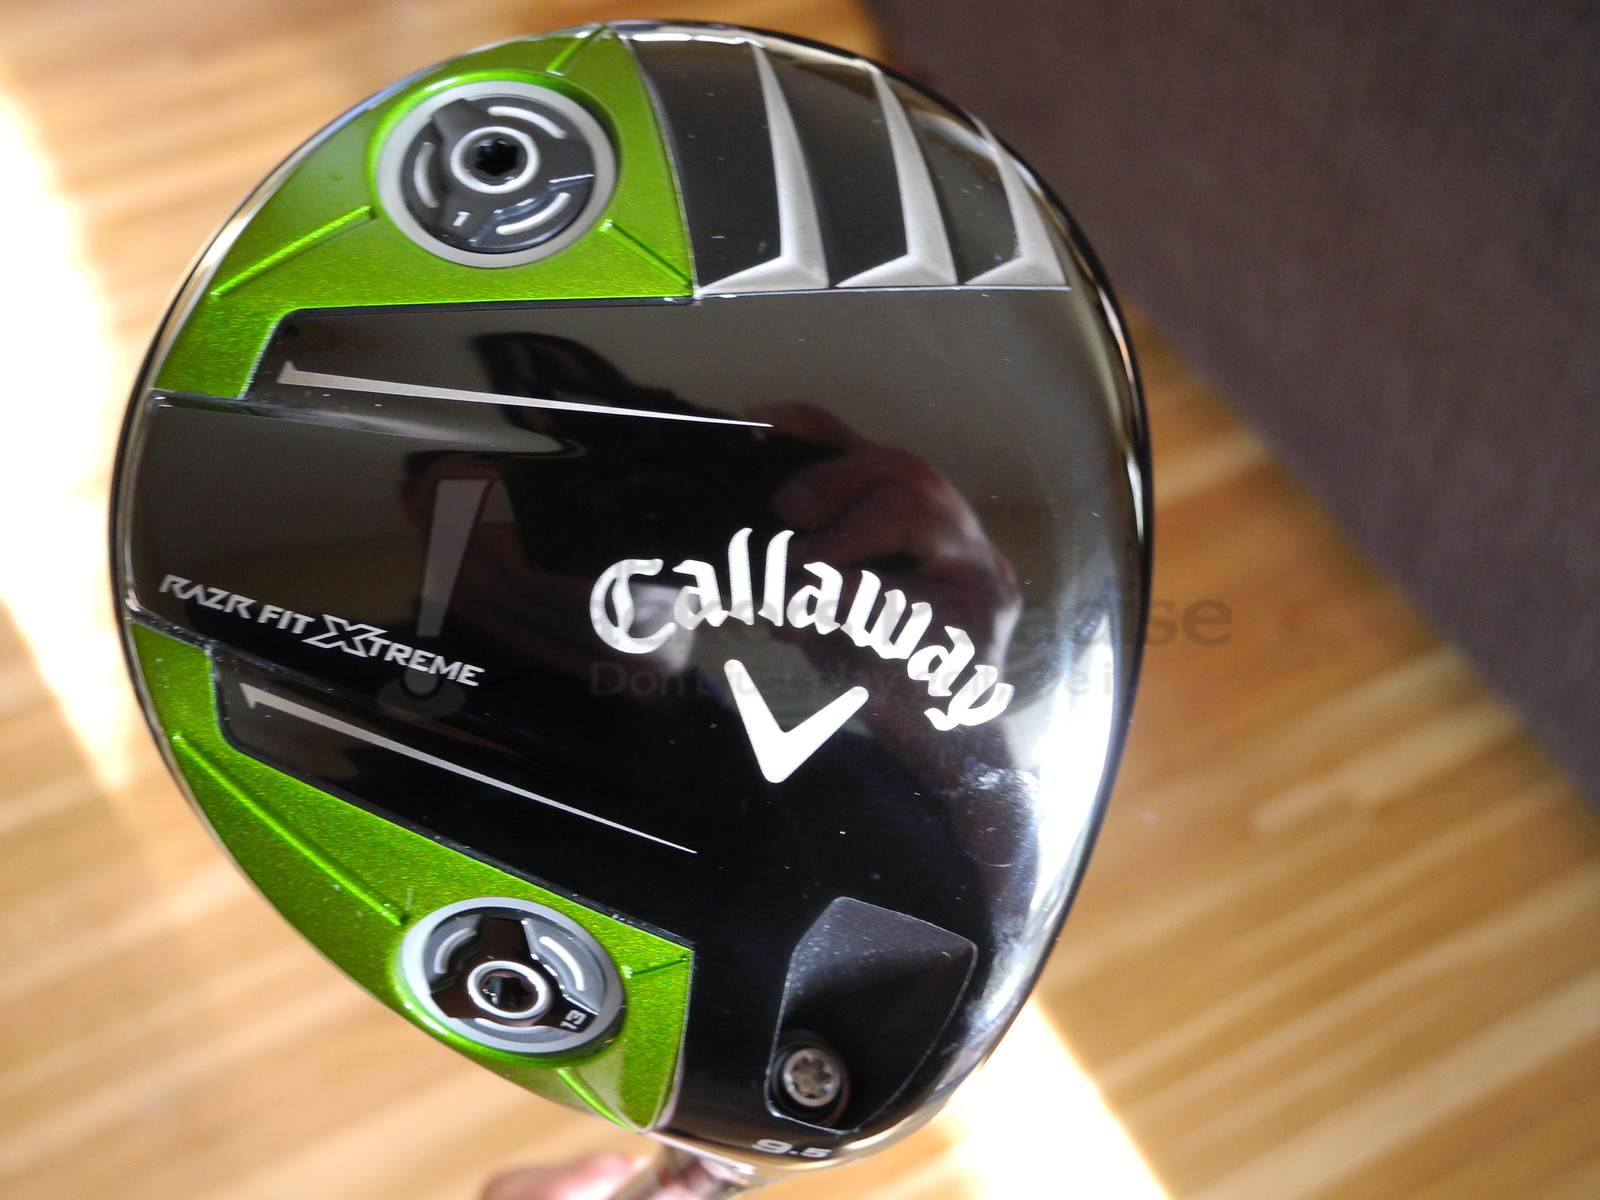 Callaway razr fit xtreme driver review plugged in golf.